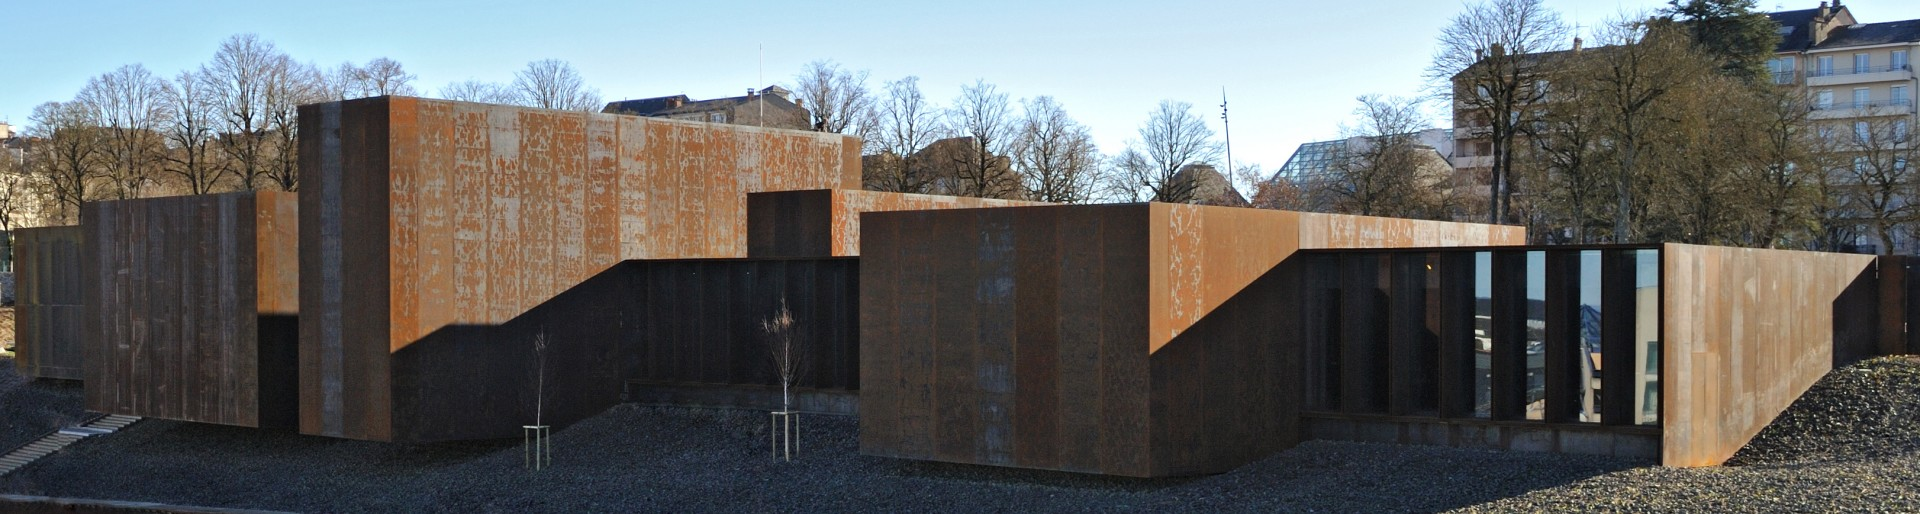 Soulages Museum in Rodez